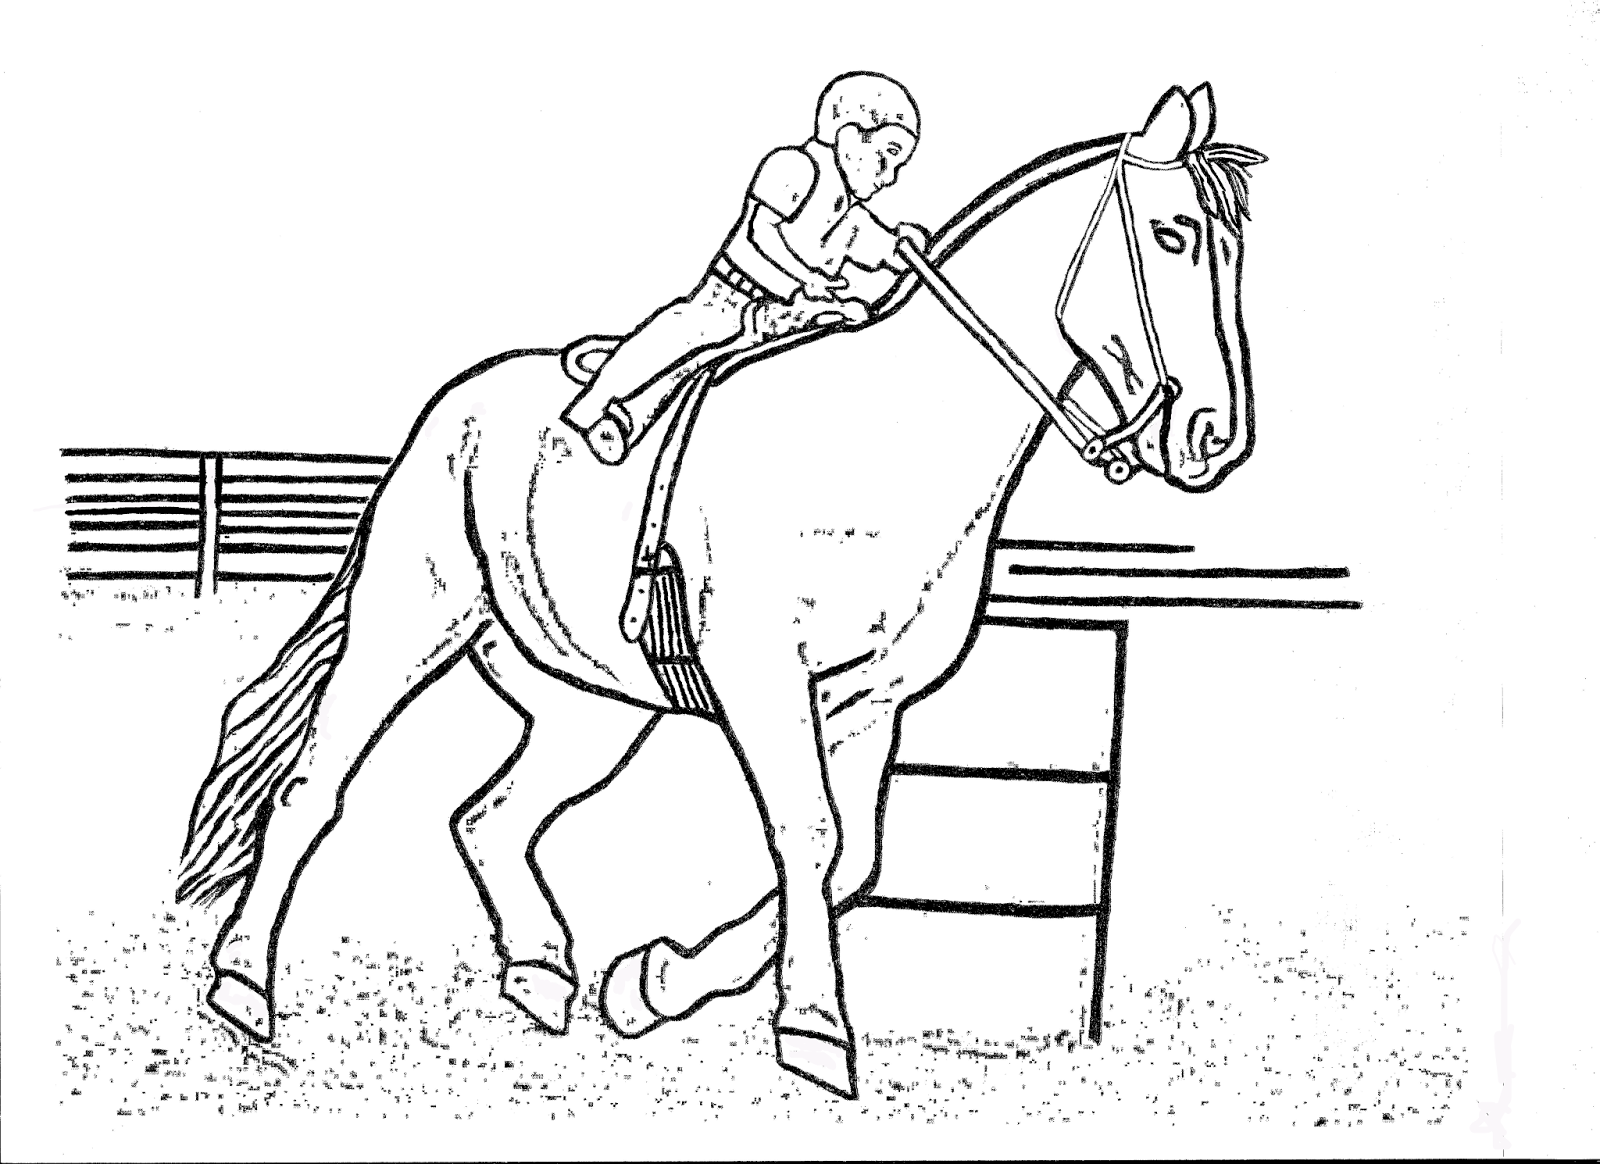 Barrel Racing Drawing at GetDrawings.com | Free for personal use ...